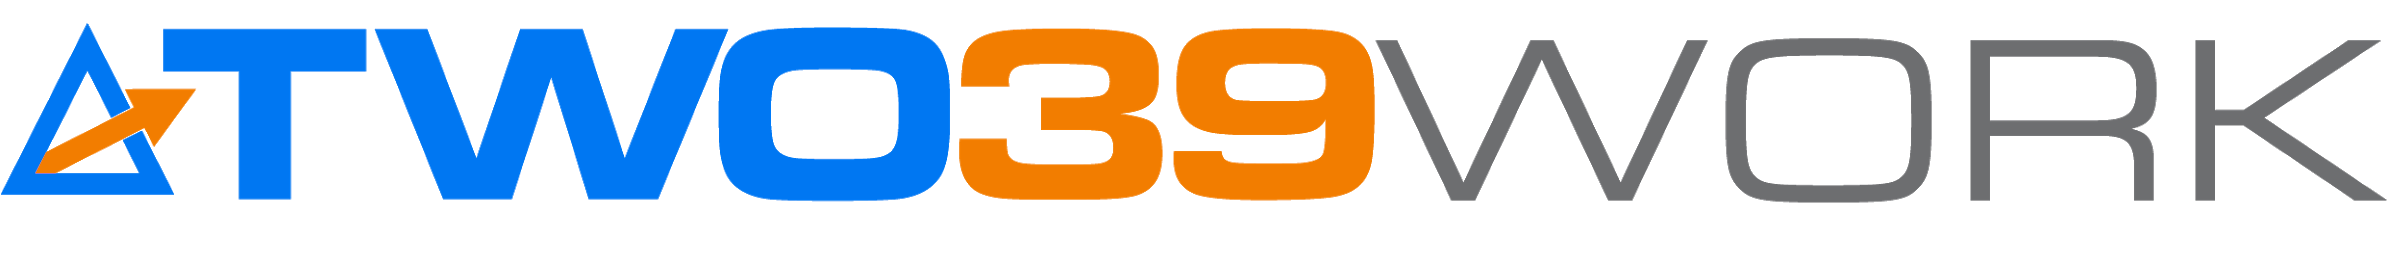 two39worklogo.png